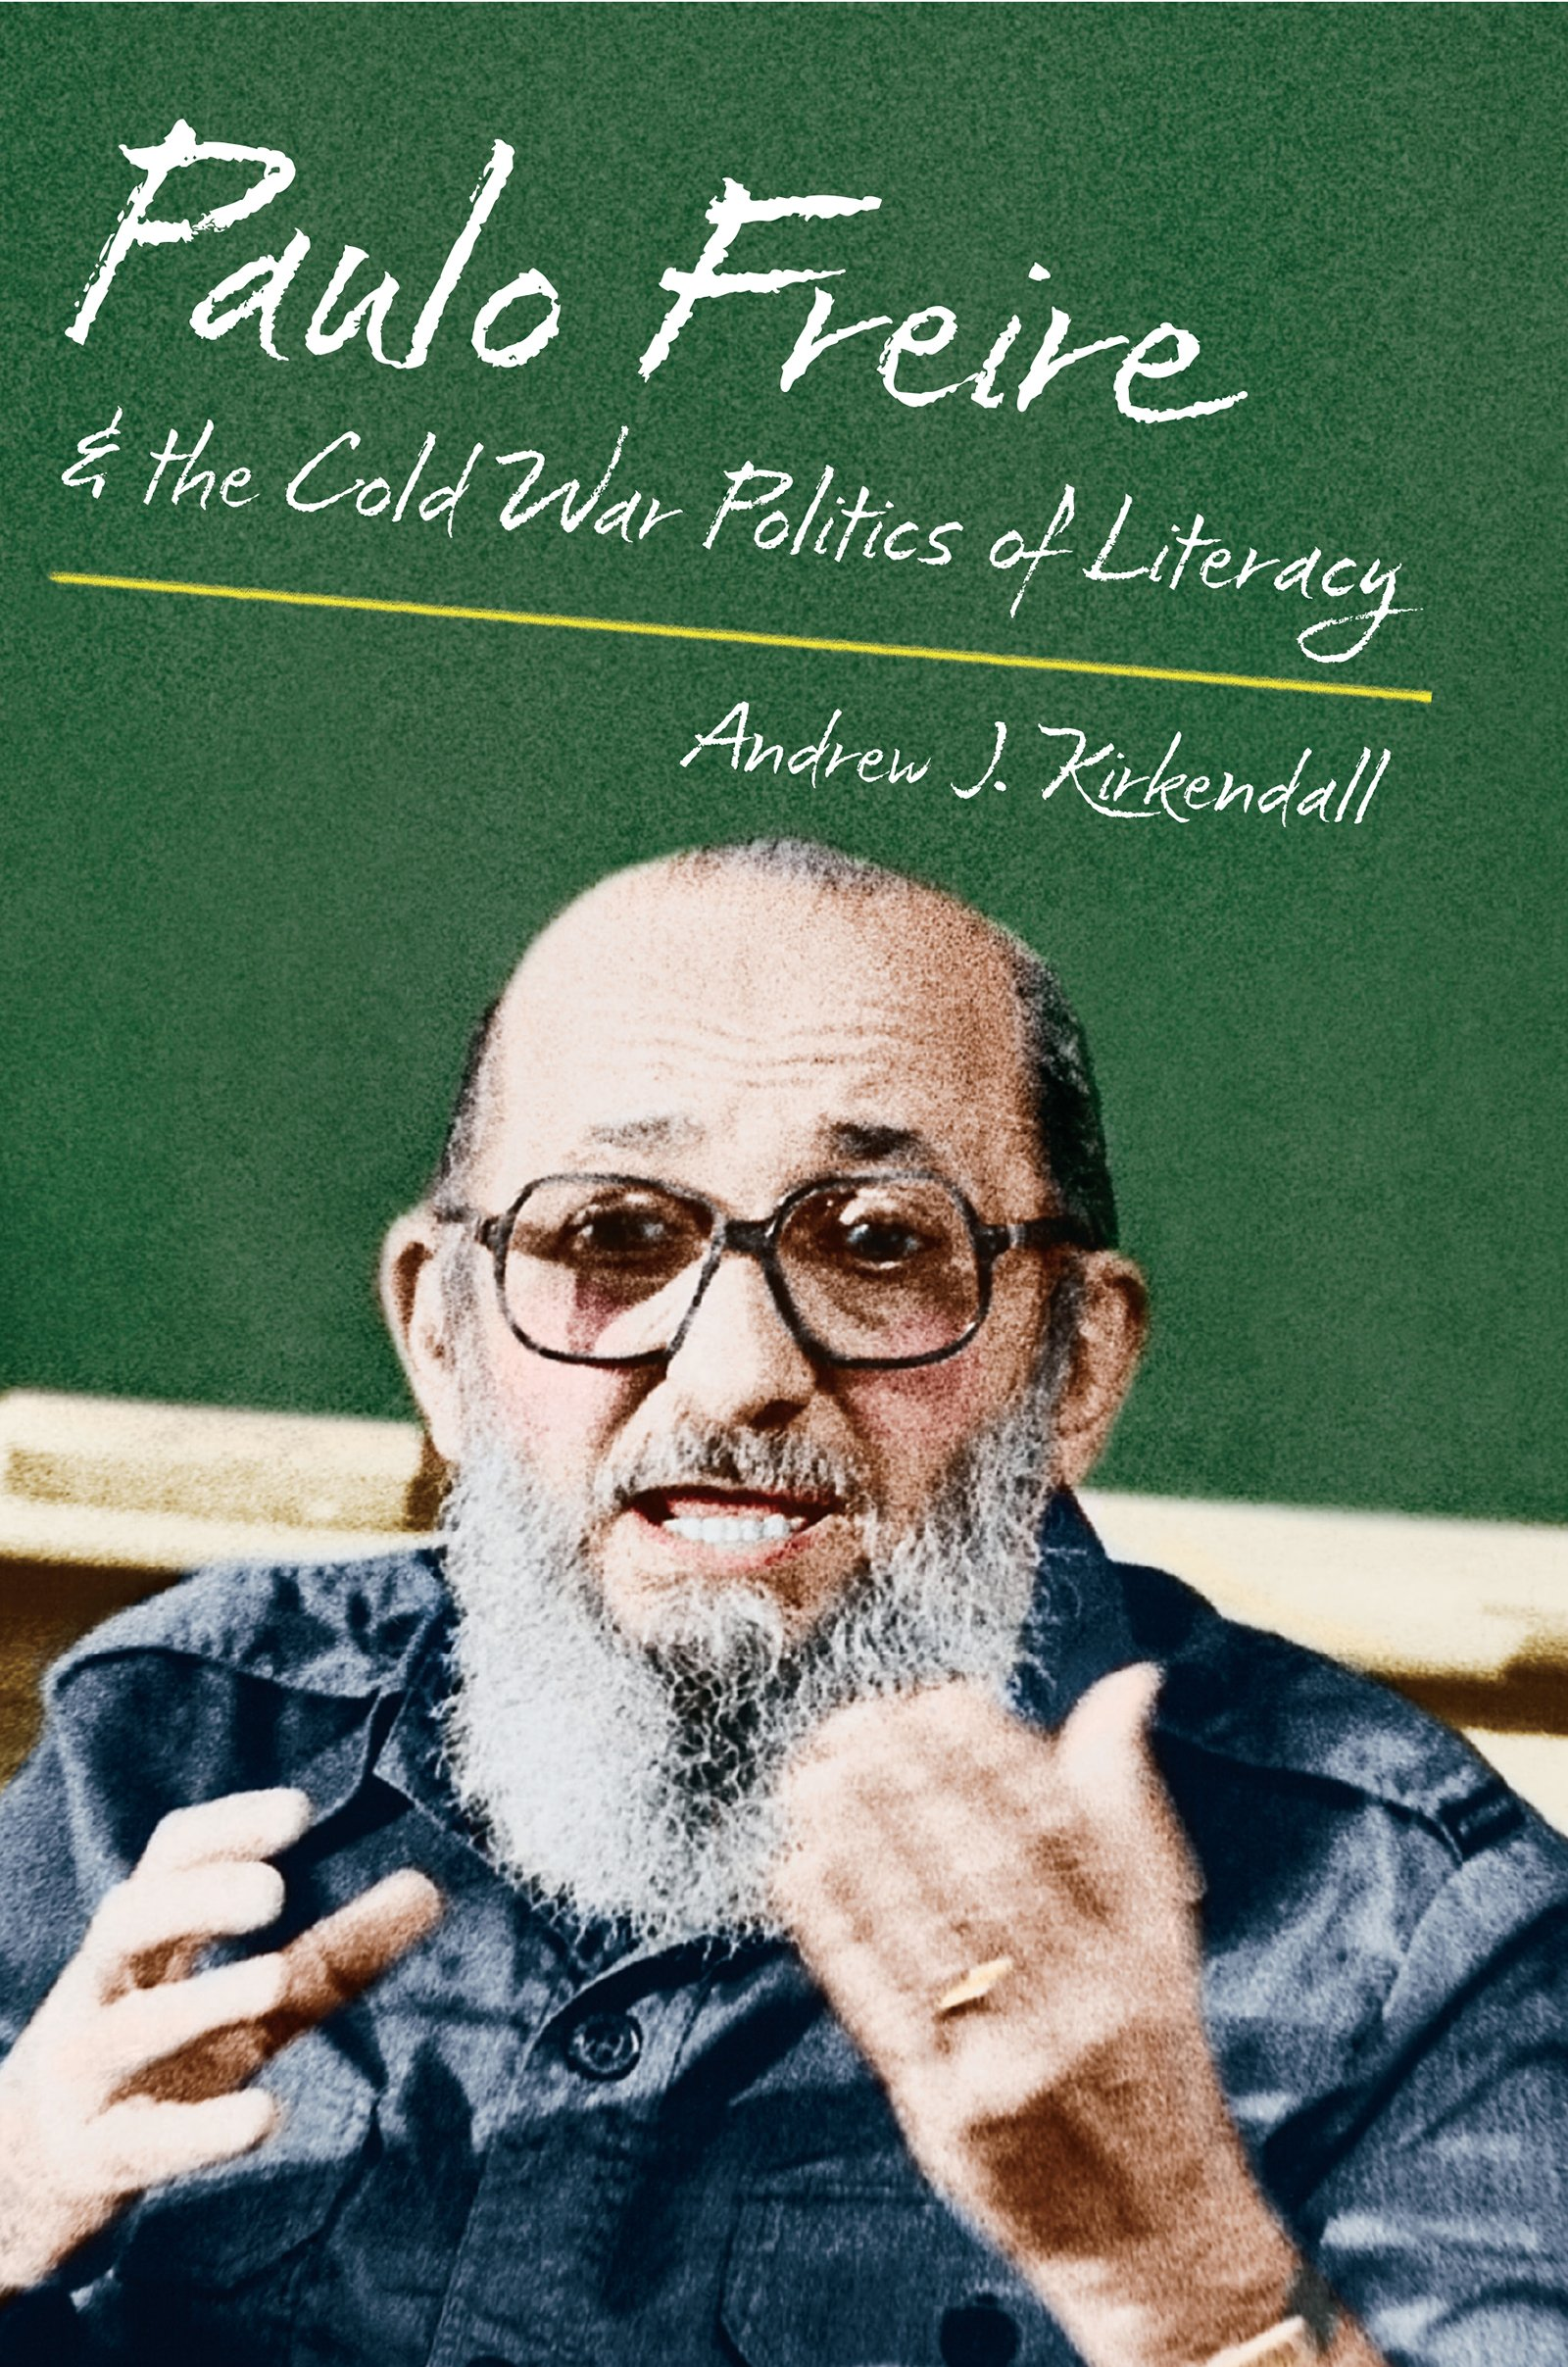 Paulo Freire and the Cold War Politics of Literacy by The University of North Carolina Press